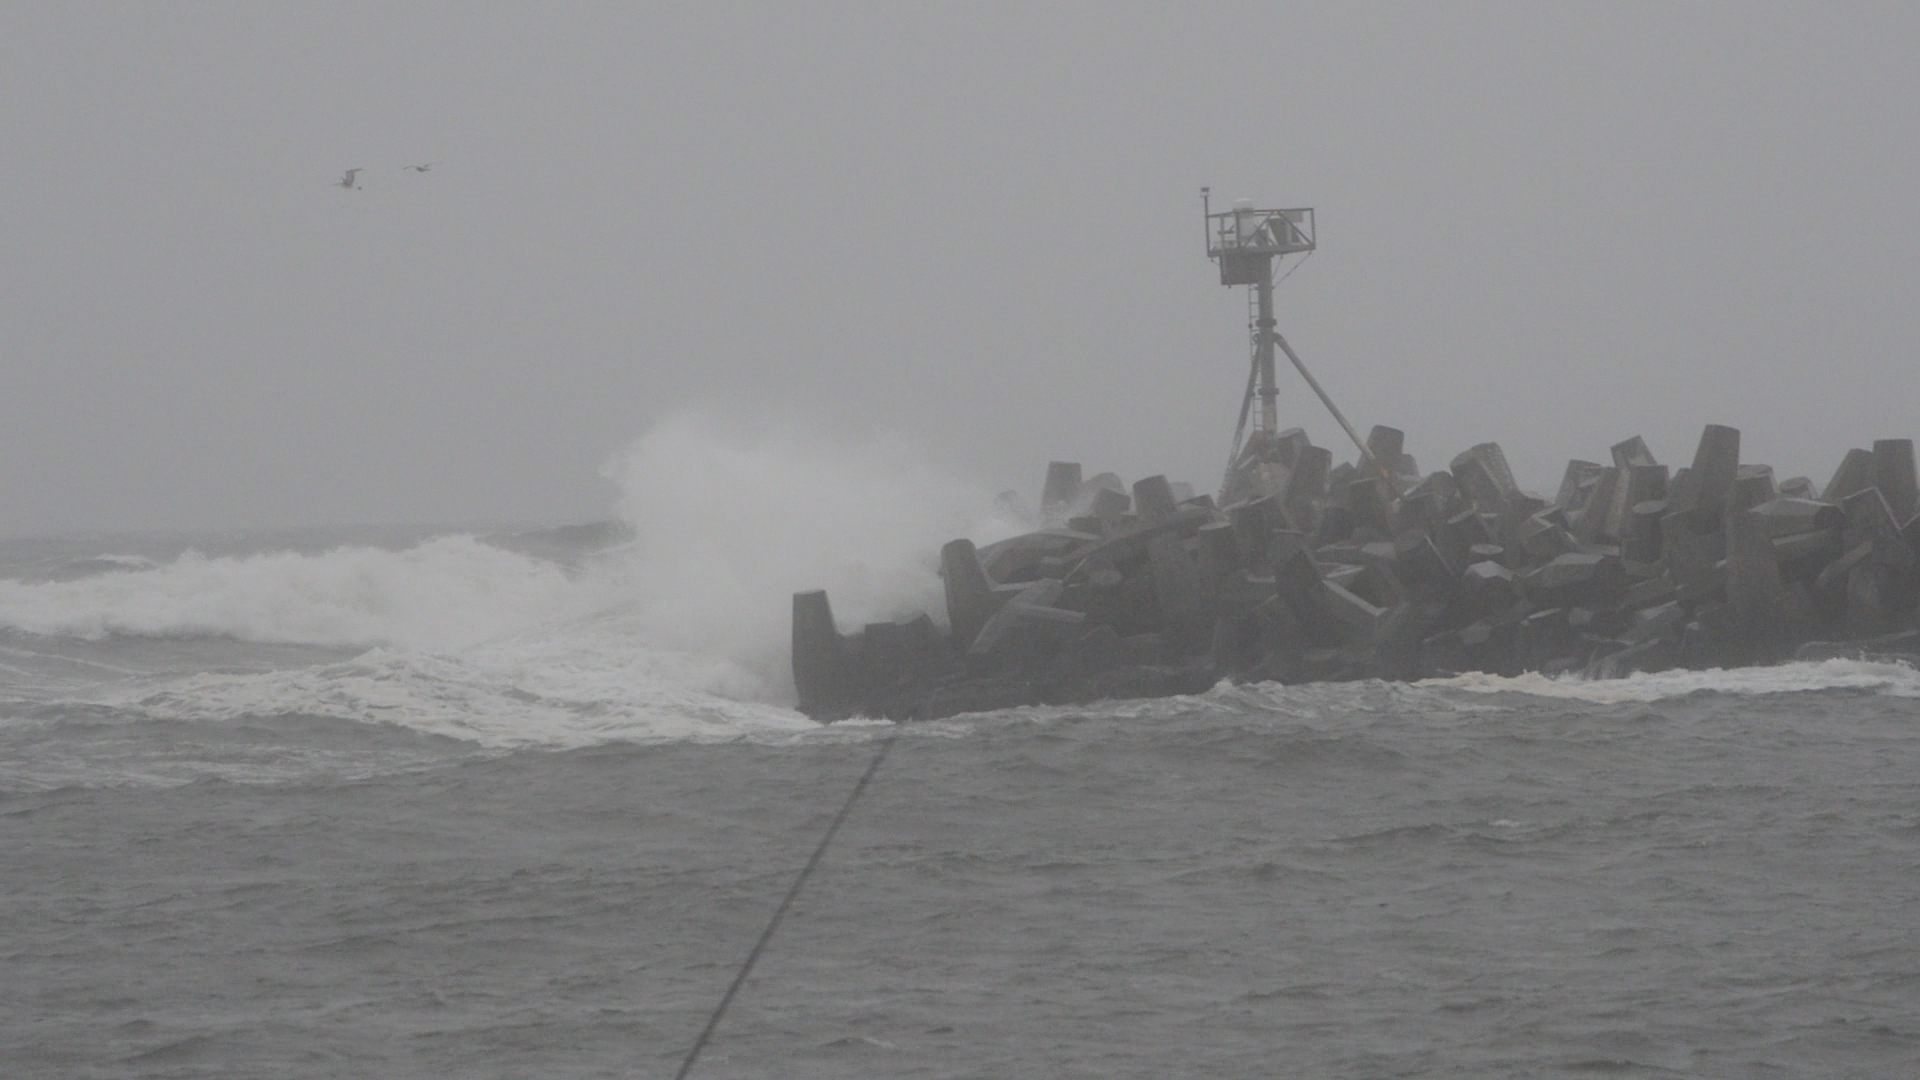 Manasquan Inlet during the May 6, 2016 storm. (Photo: Daniel Nee)